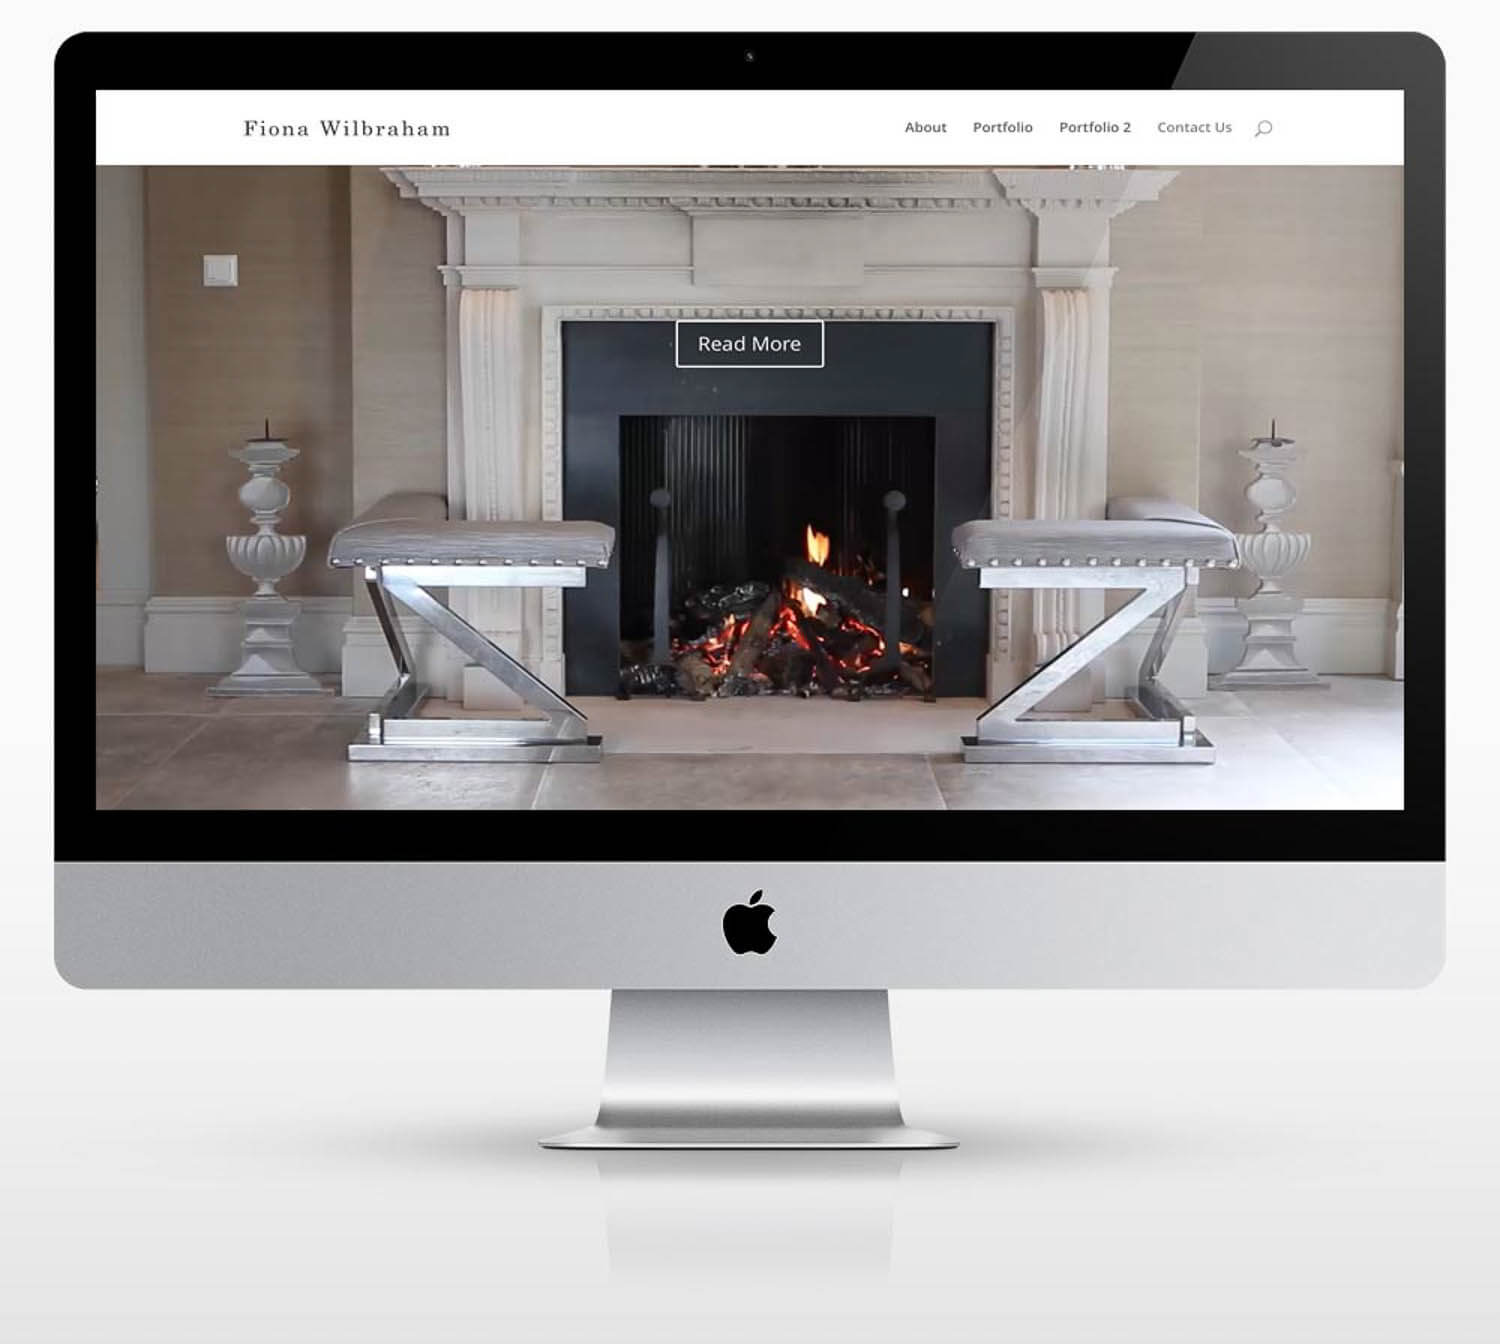 A Portfolio website design for furniture designer